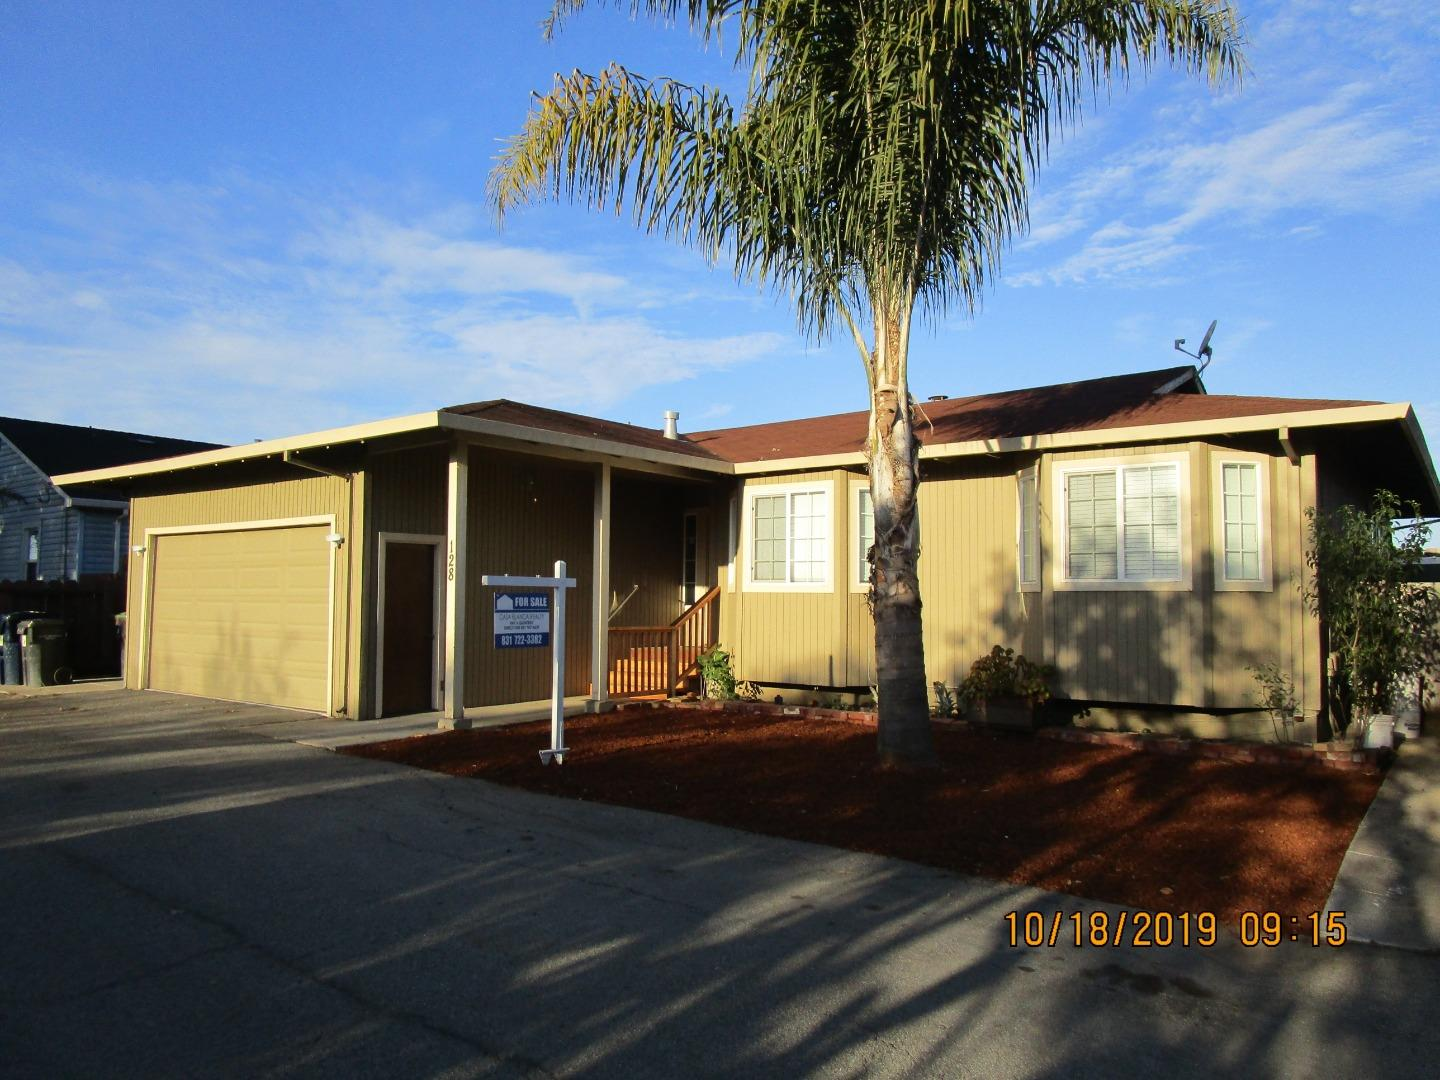 Freedom location ,  a truly well kept home, move in ready.  Feels very spacious,home features  tile floors , free standing fireplace, granite kitchen counter tops, low maintenance yard, close to shopping, schools and easy access to highway one for commuters.